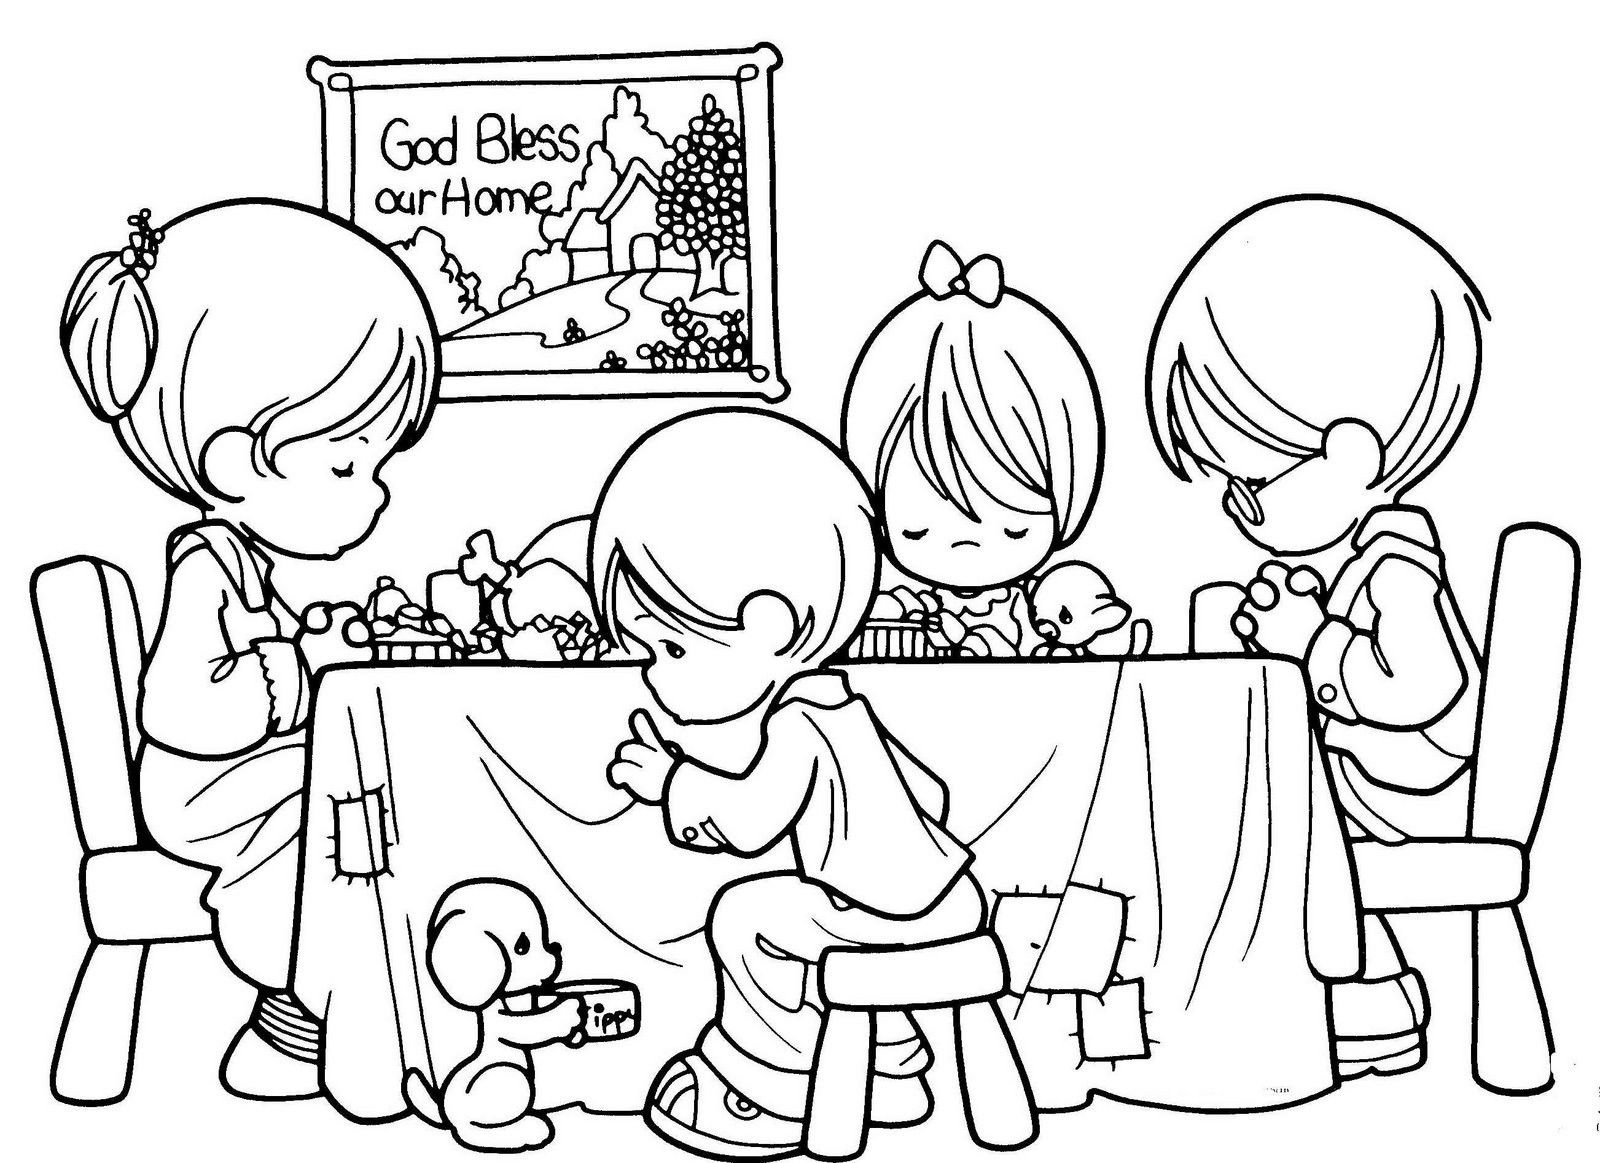 20 Ideas For Christian Coloring Pages For Toddlers